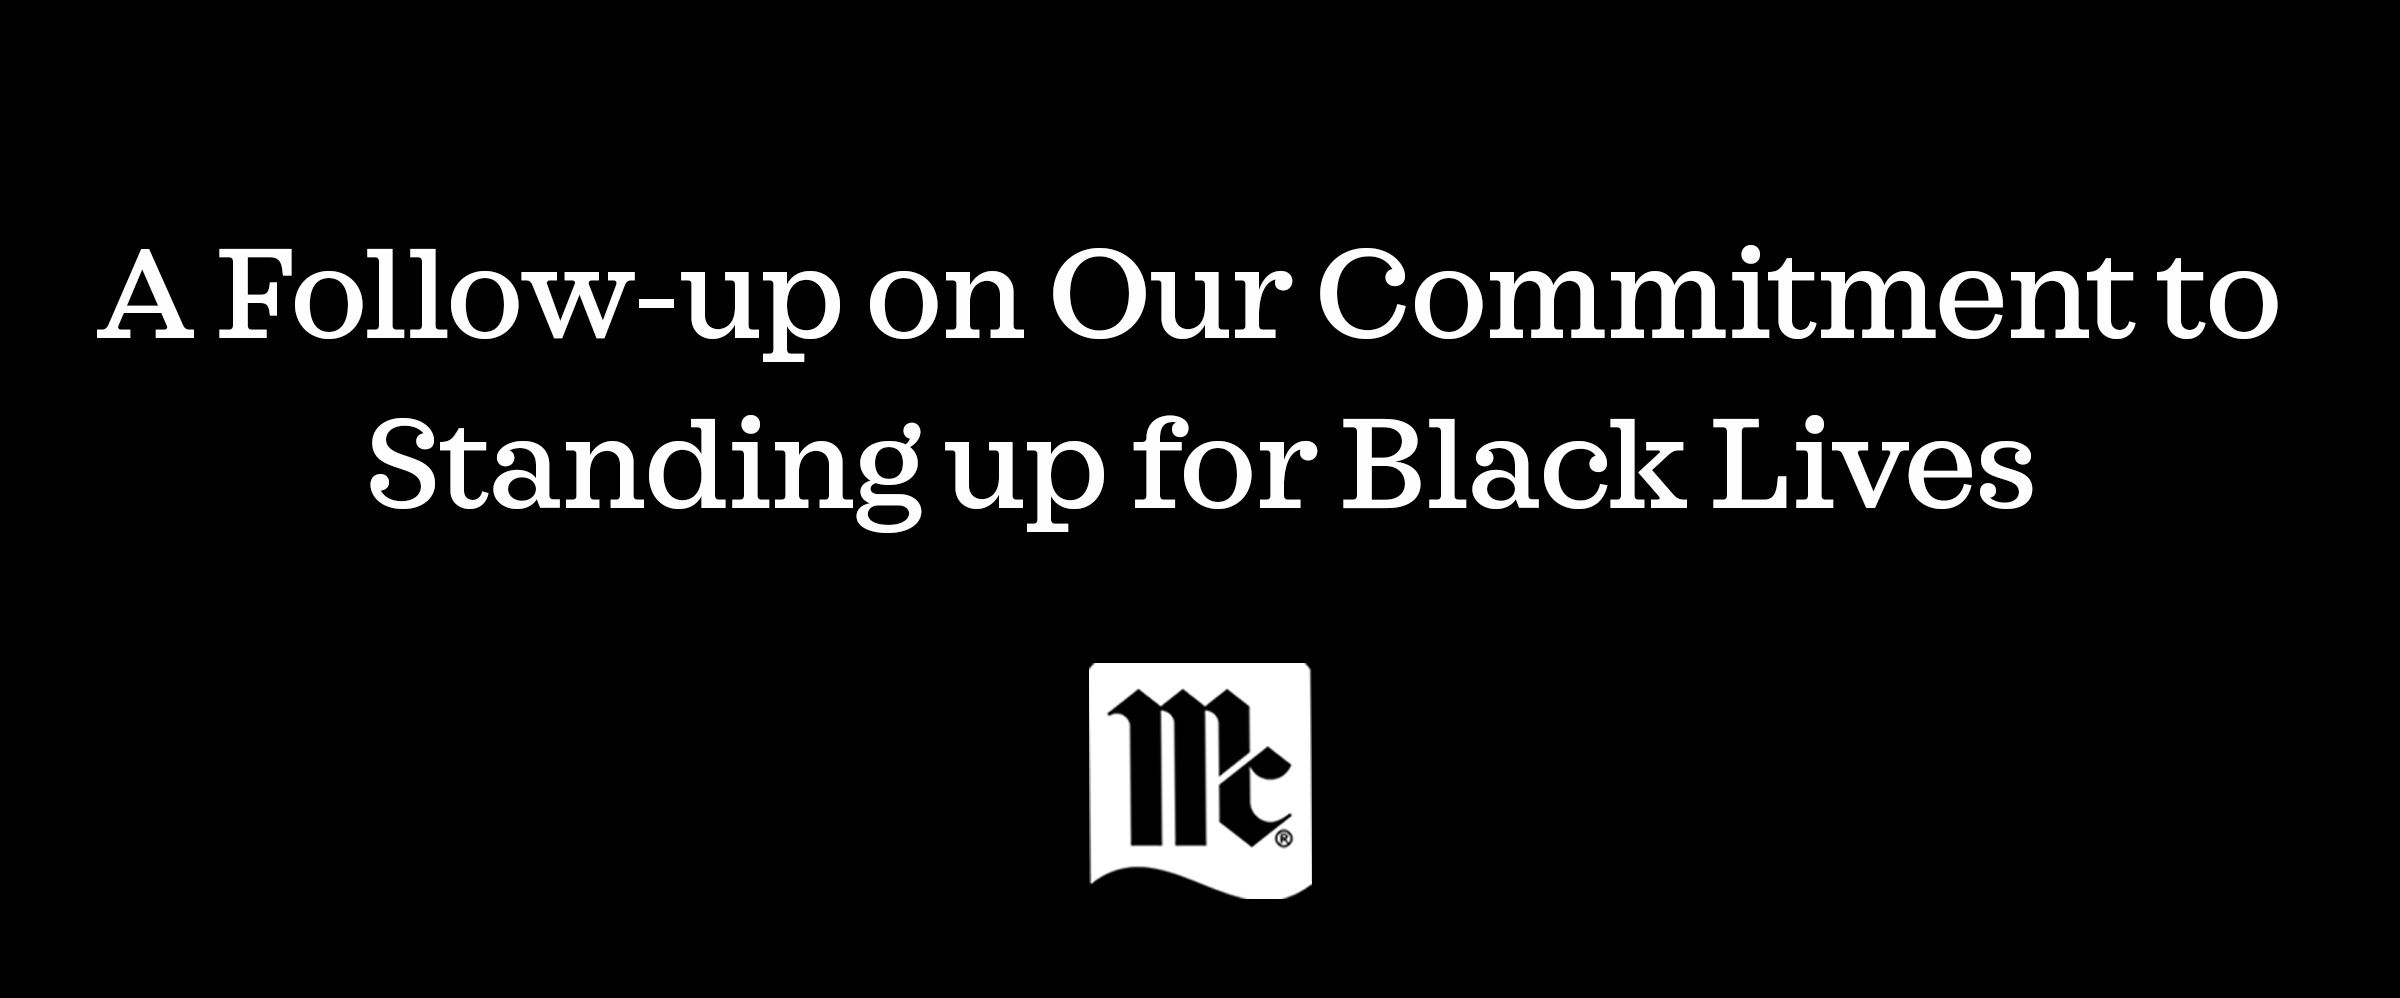 McCormick & Company Support for Black Lives; Diversity and Inclusion; D&I; corporate giving